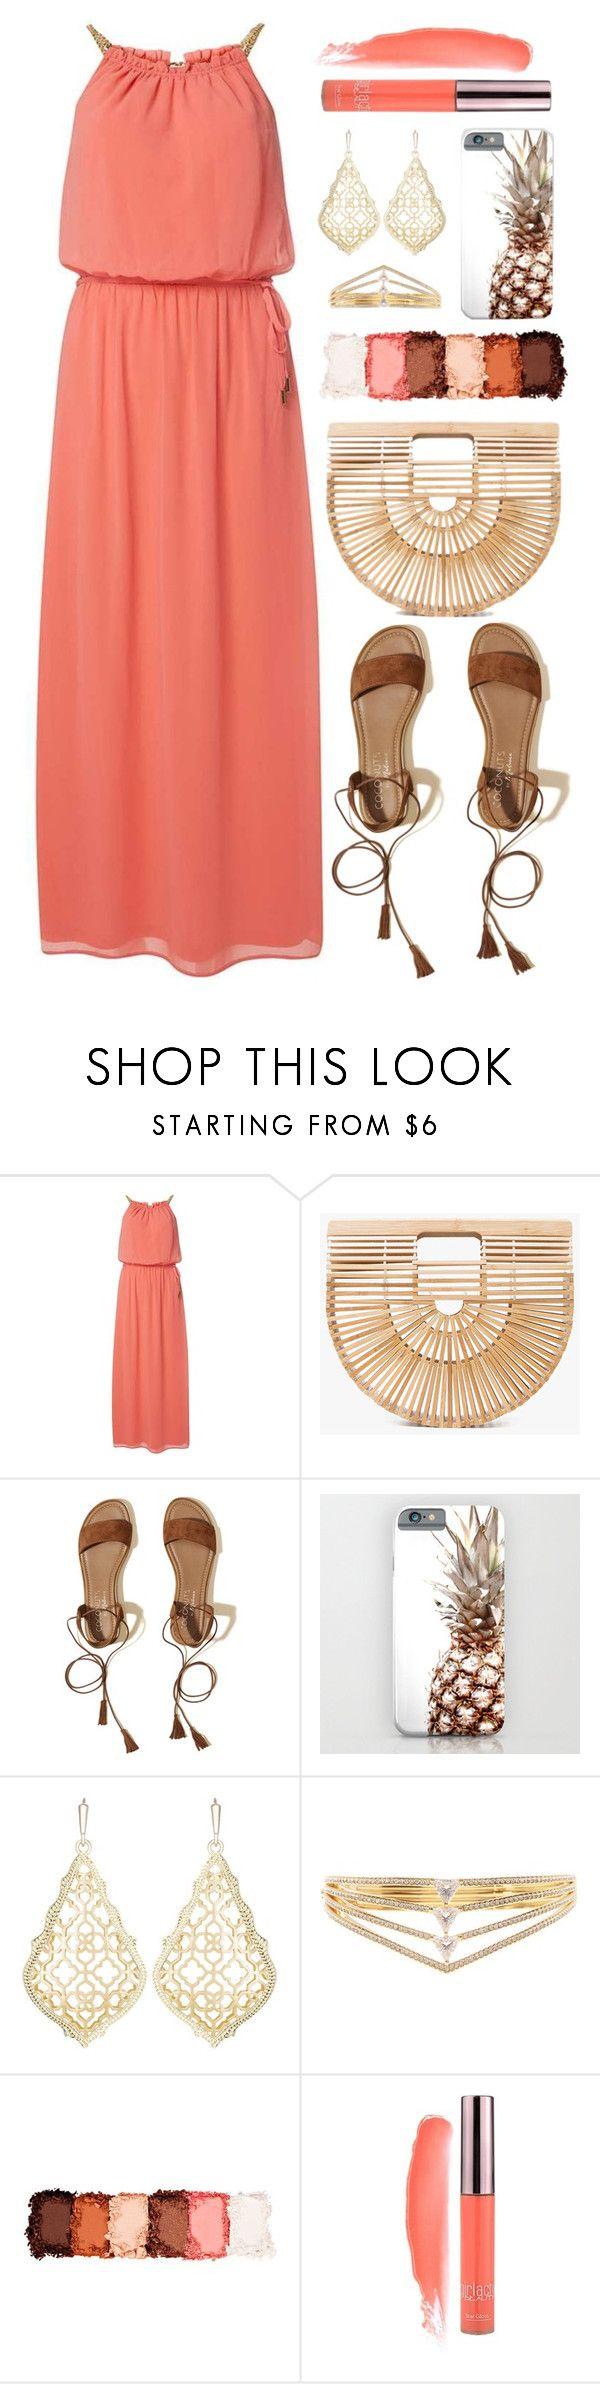 OOTD - Coral Maxi Dress by by-jwp on Polyvore featuring Dorothy Perkins, Hollister Co., Cult Gaia, Kendra Scott, Nadri and NYX